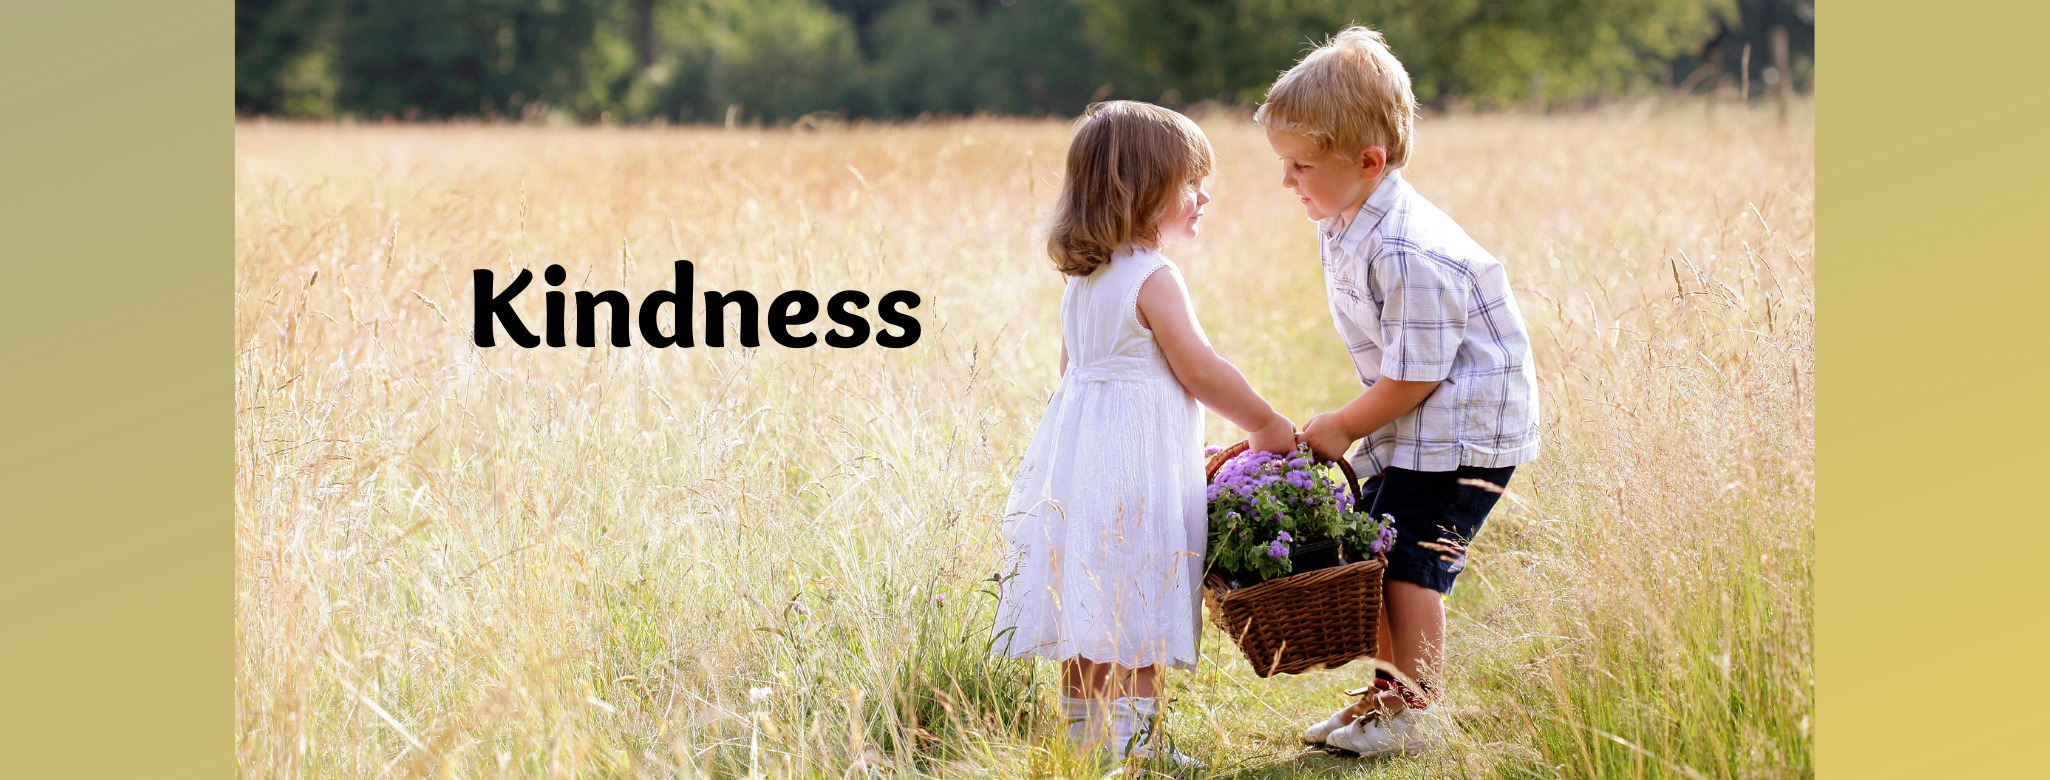 Acts of Kindness Are Good For YOU